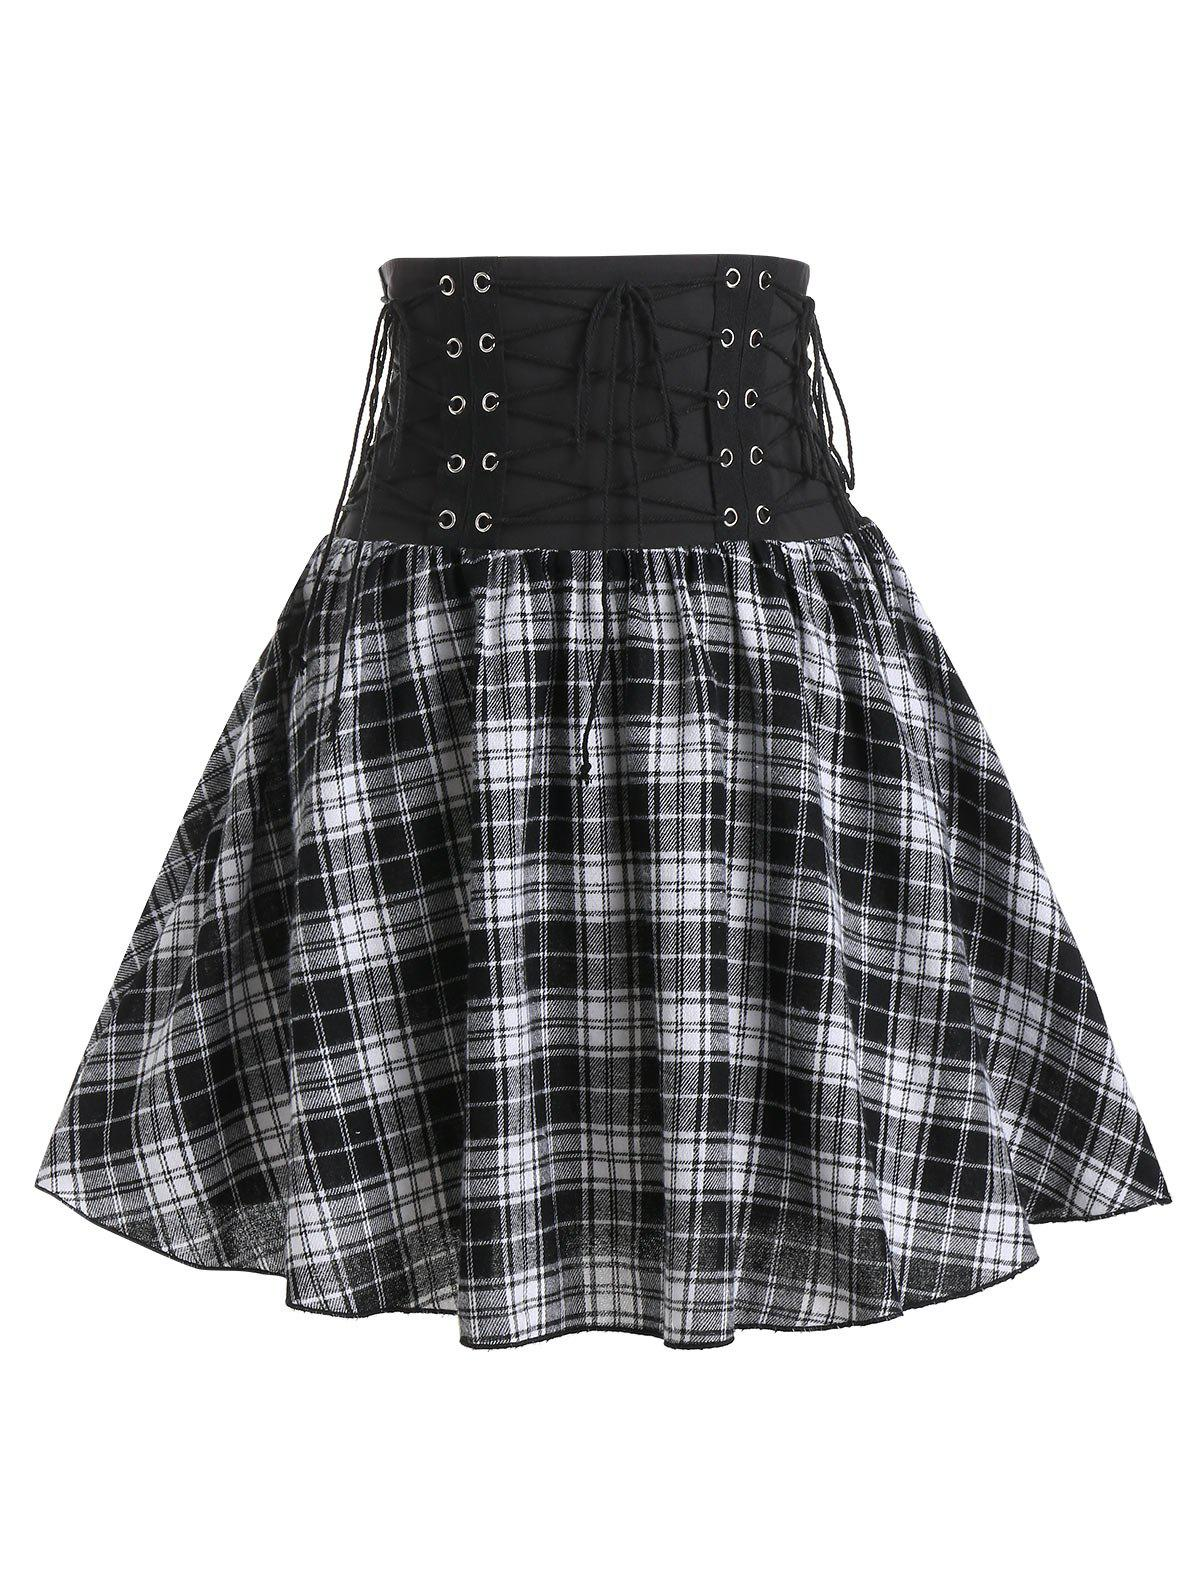 Plaid Print Lace-up High Waisted Skirt - BLACK M